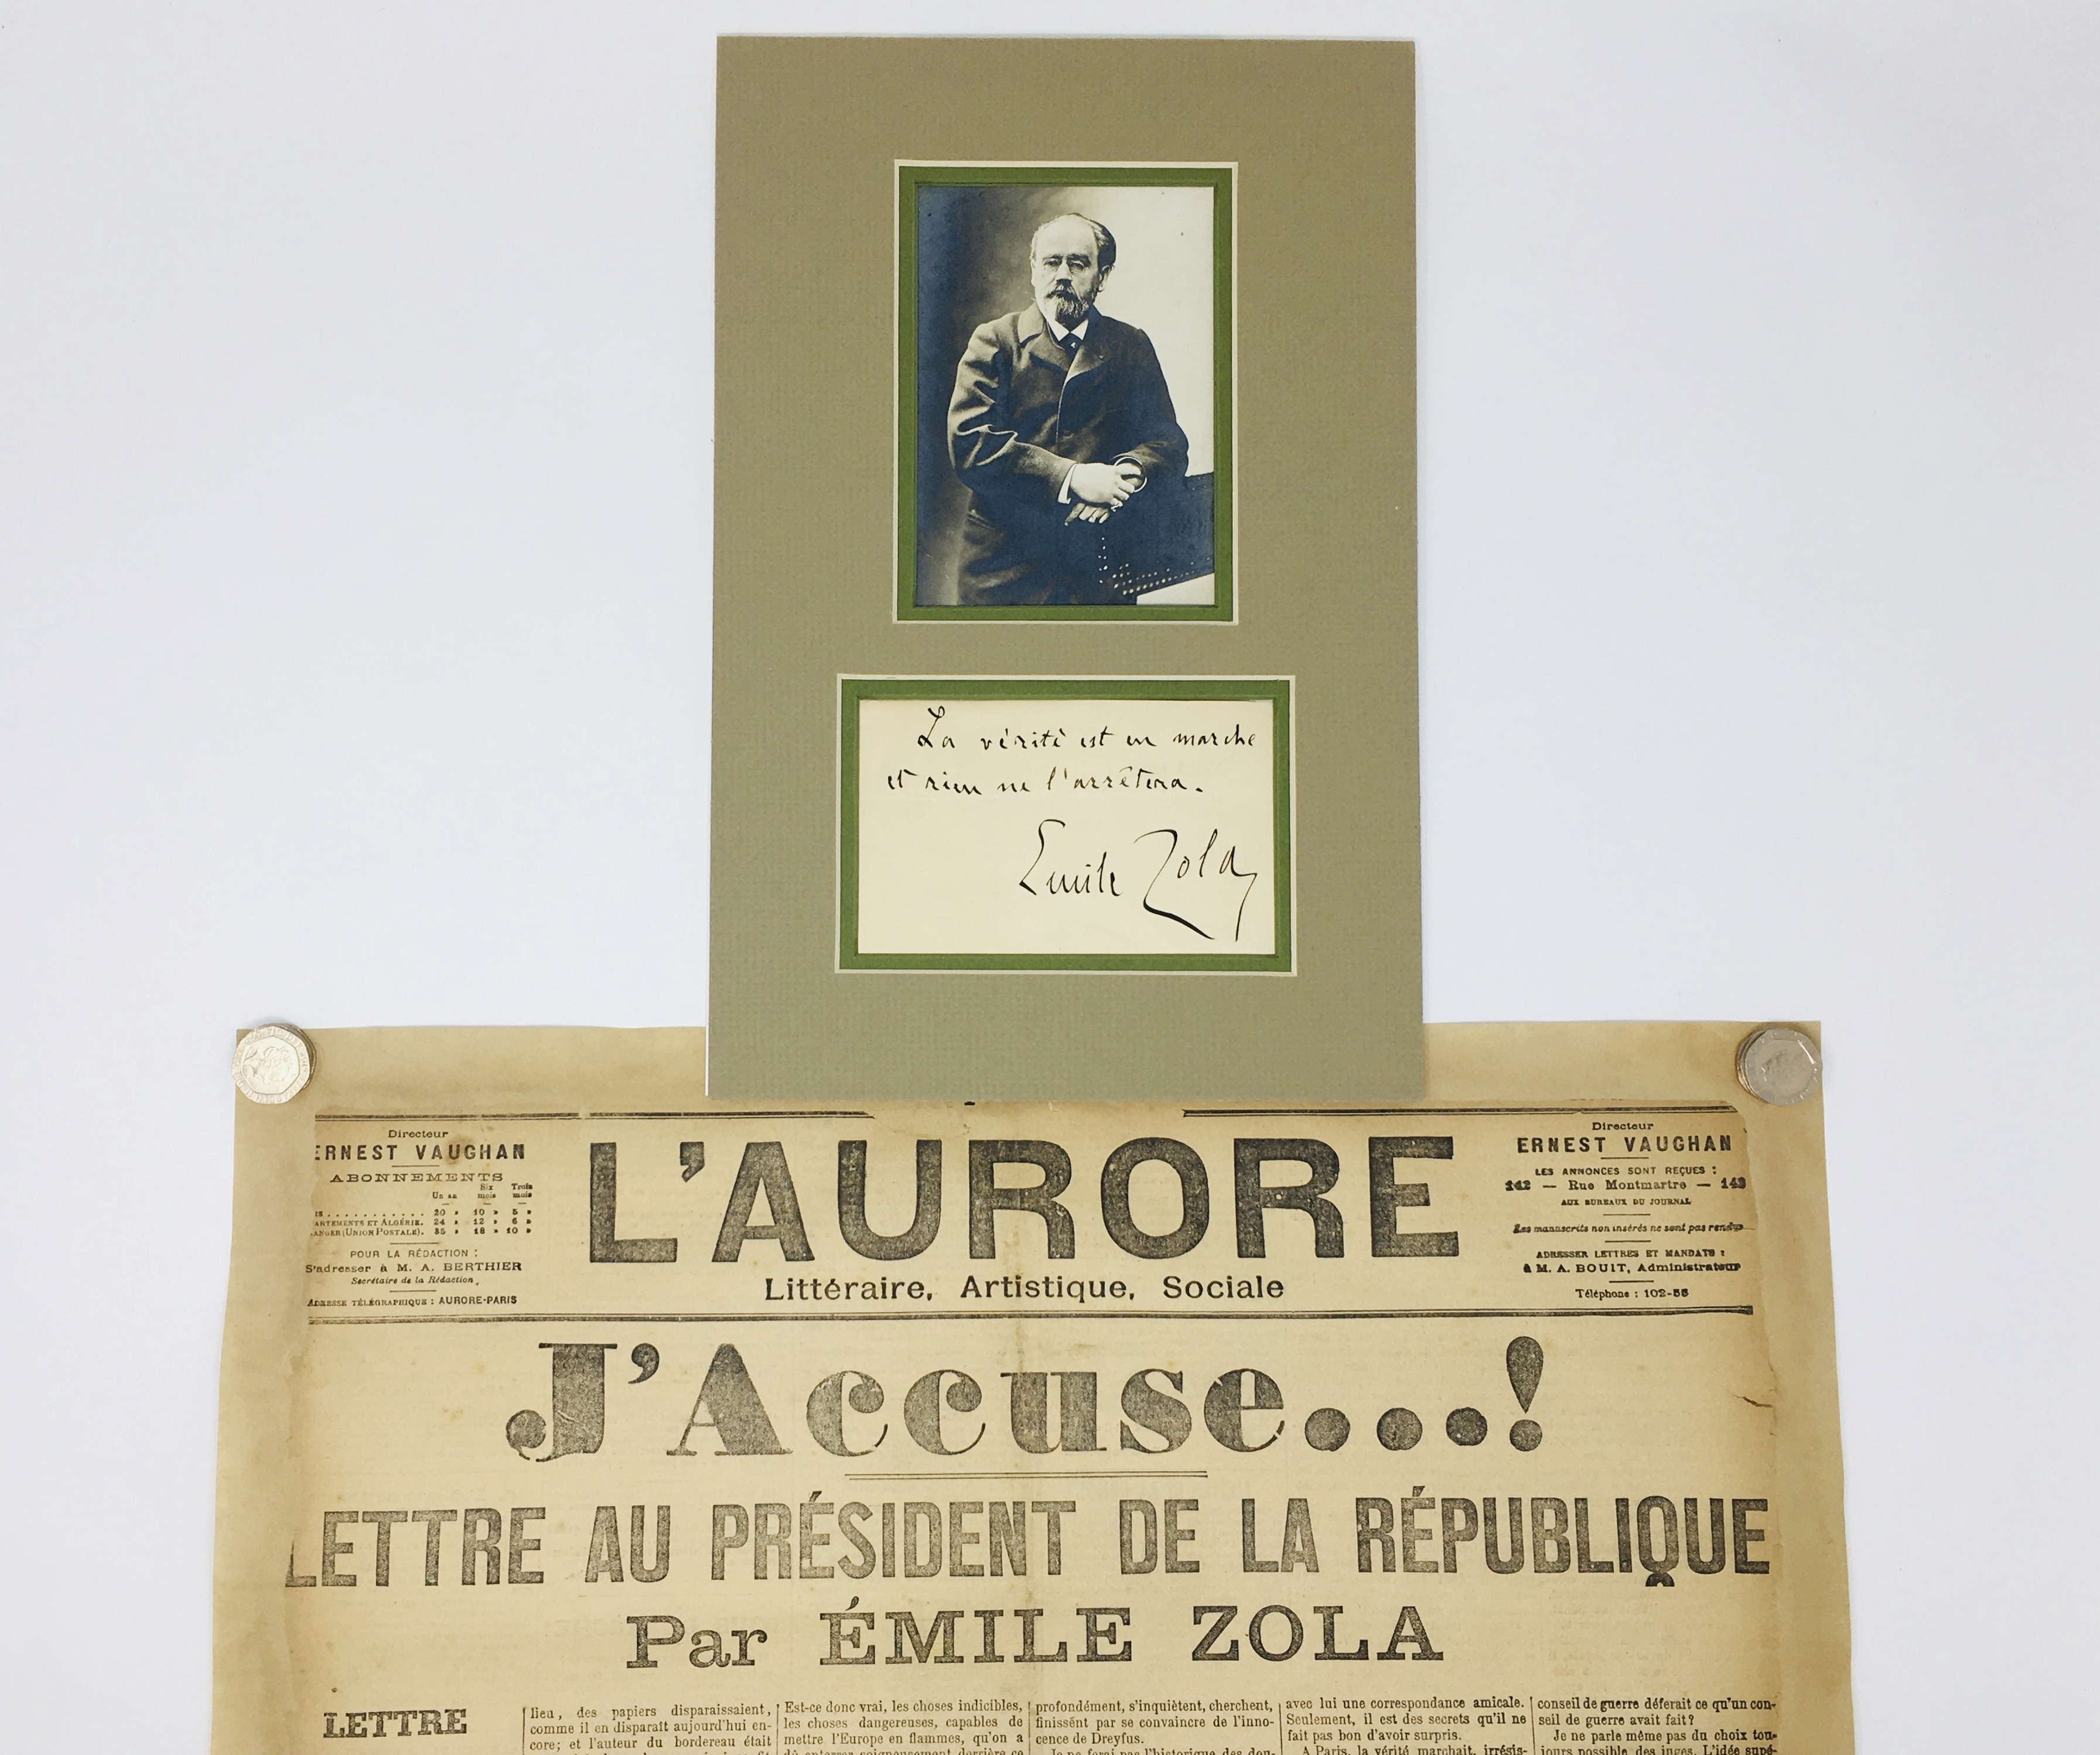 J'Accuse Newspaper, Emile Zola Quote, Signed Dreyfus Portrait, Rare Trial Drawings & Schwartzkoppen - Image 2 of 74